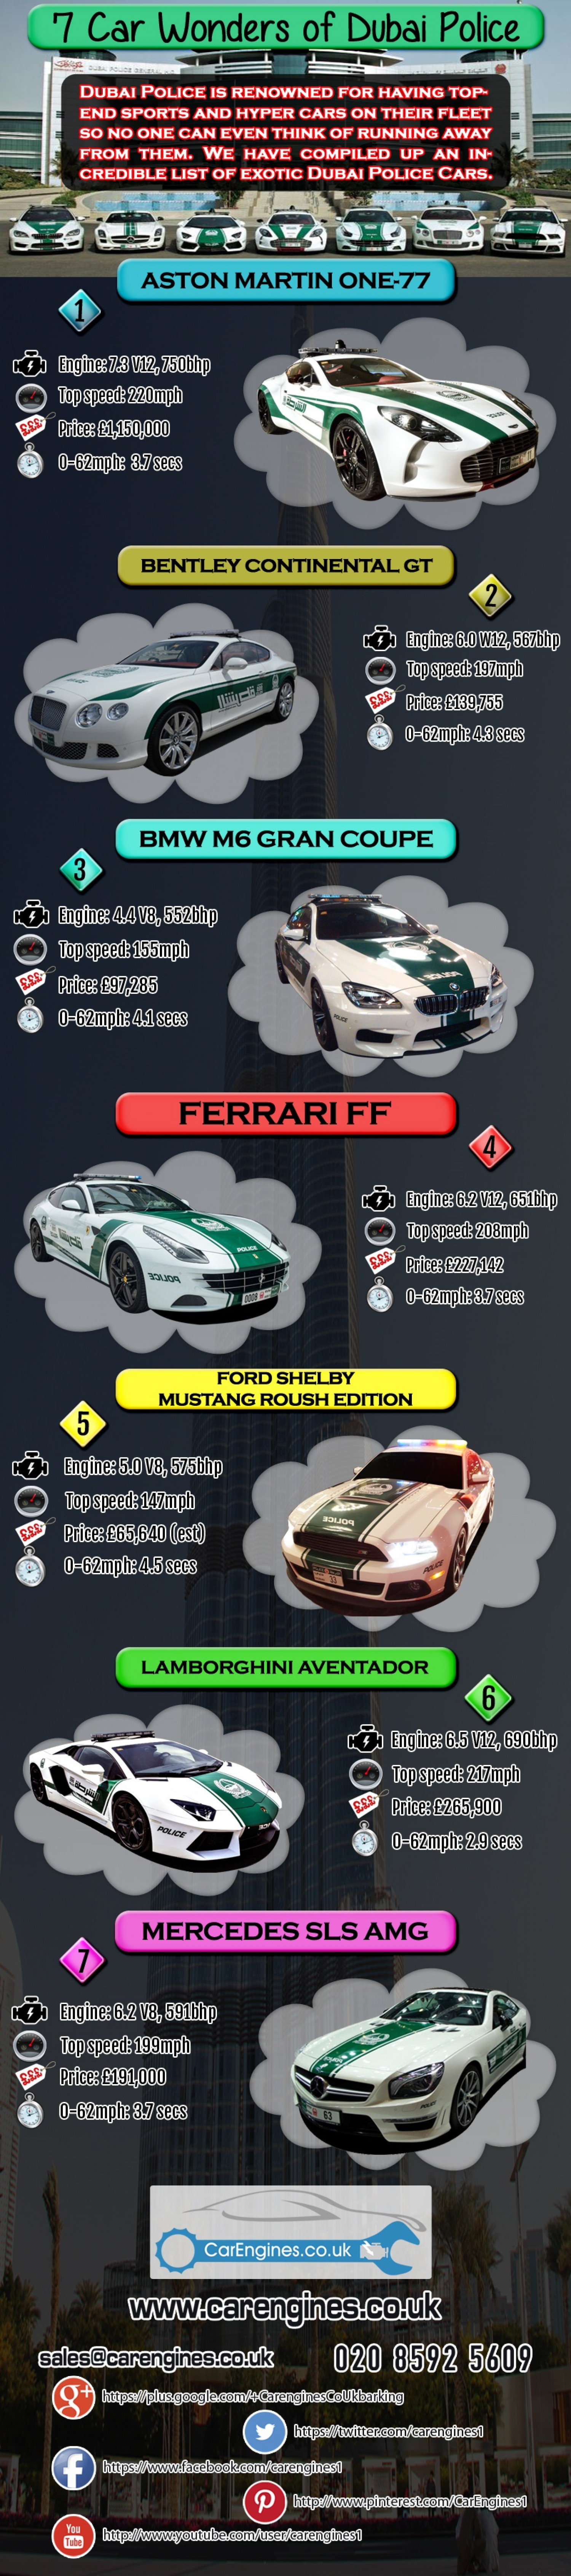 Incredible Supercars Of Dubai Police Infographic